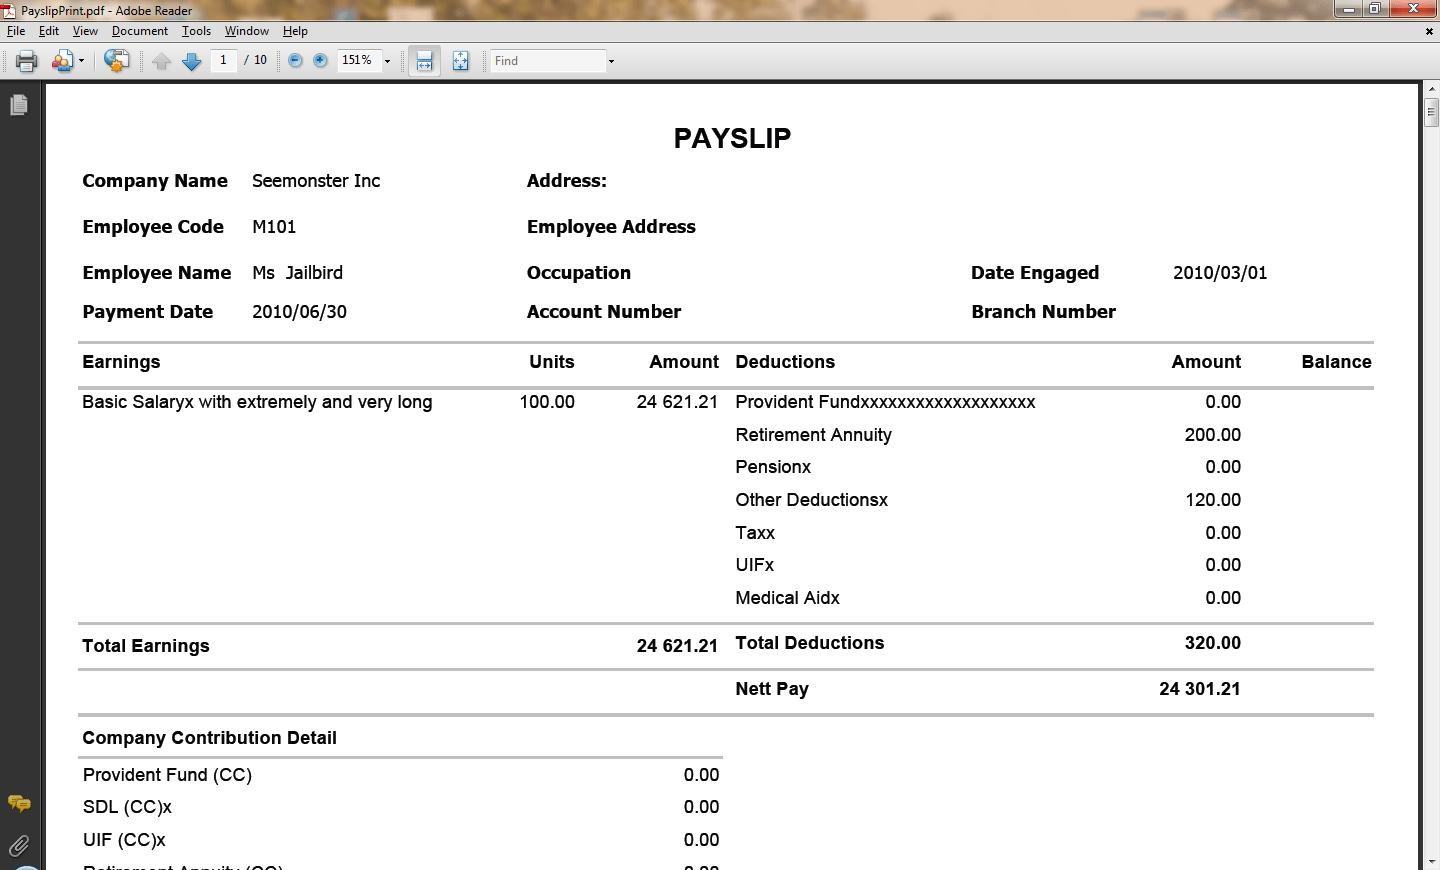 Pay Slip Templates payslip template payslip template 21 pay stub – Payslip Templates